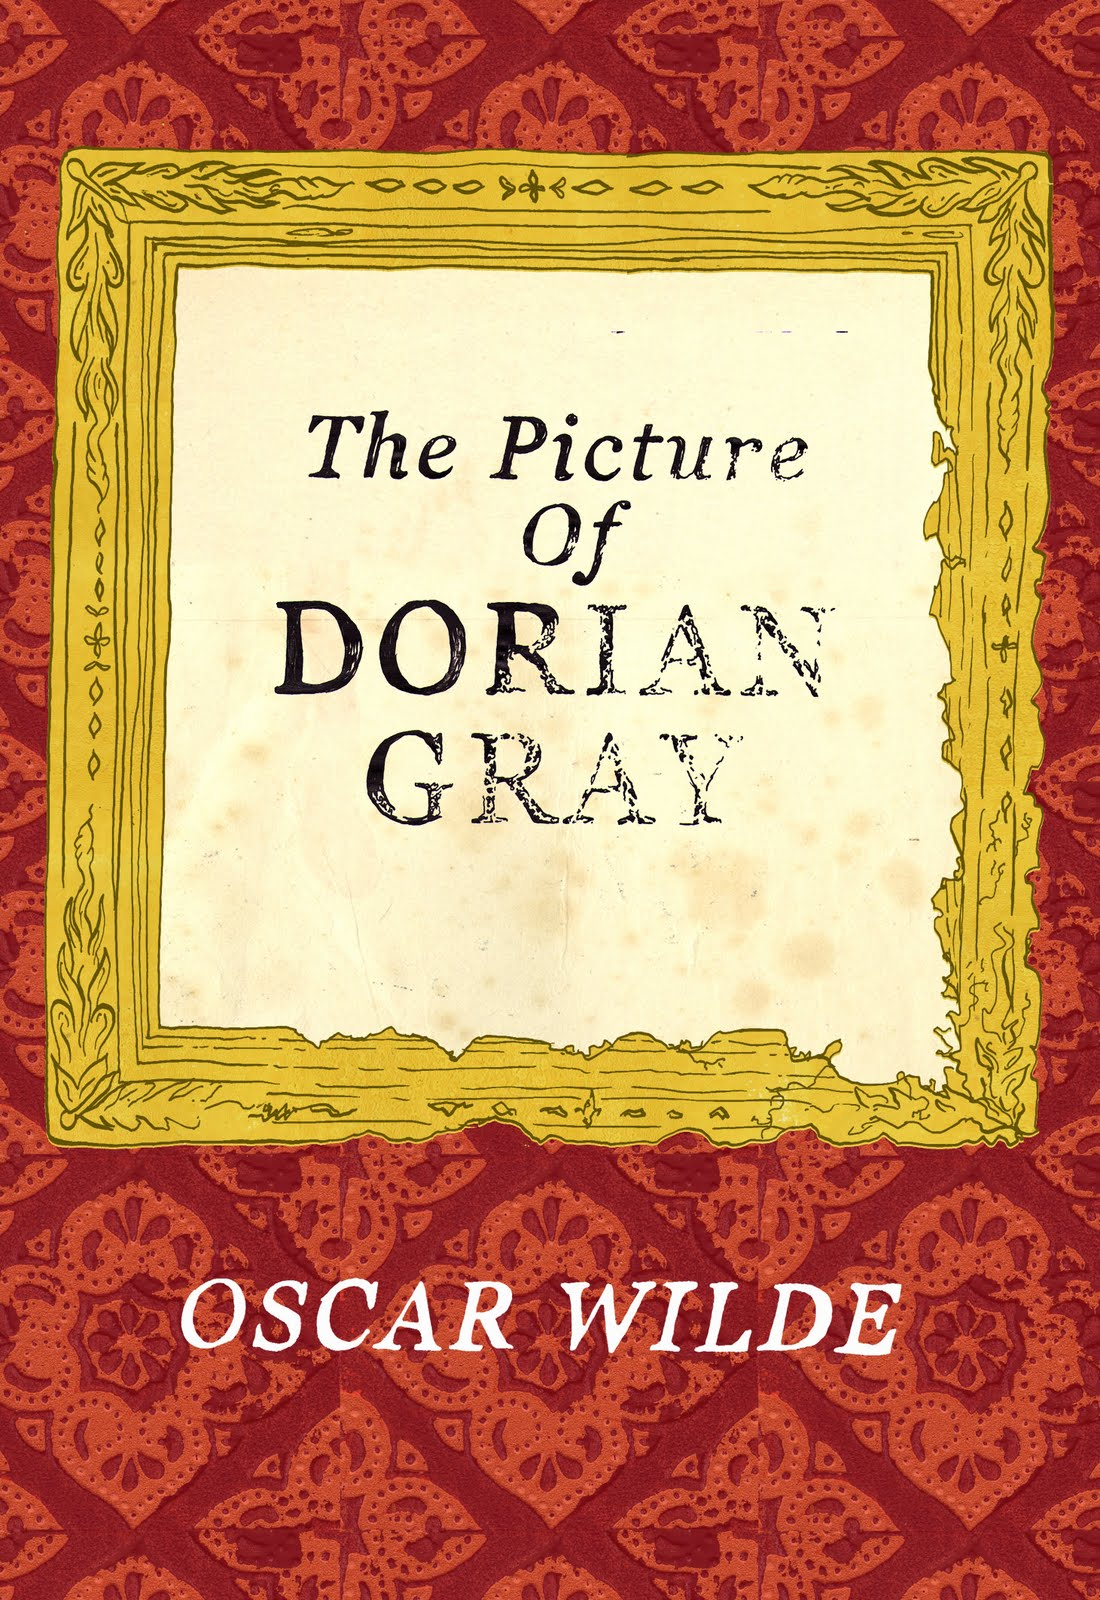 thesis on the picture of dorian gray Category: essays research papers title: the picture of dorian gray.